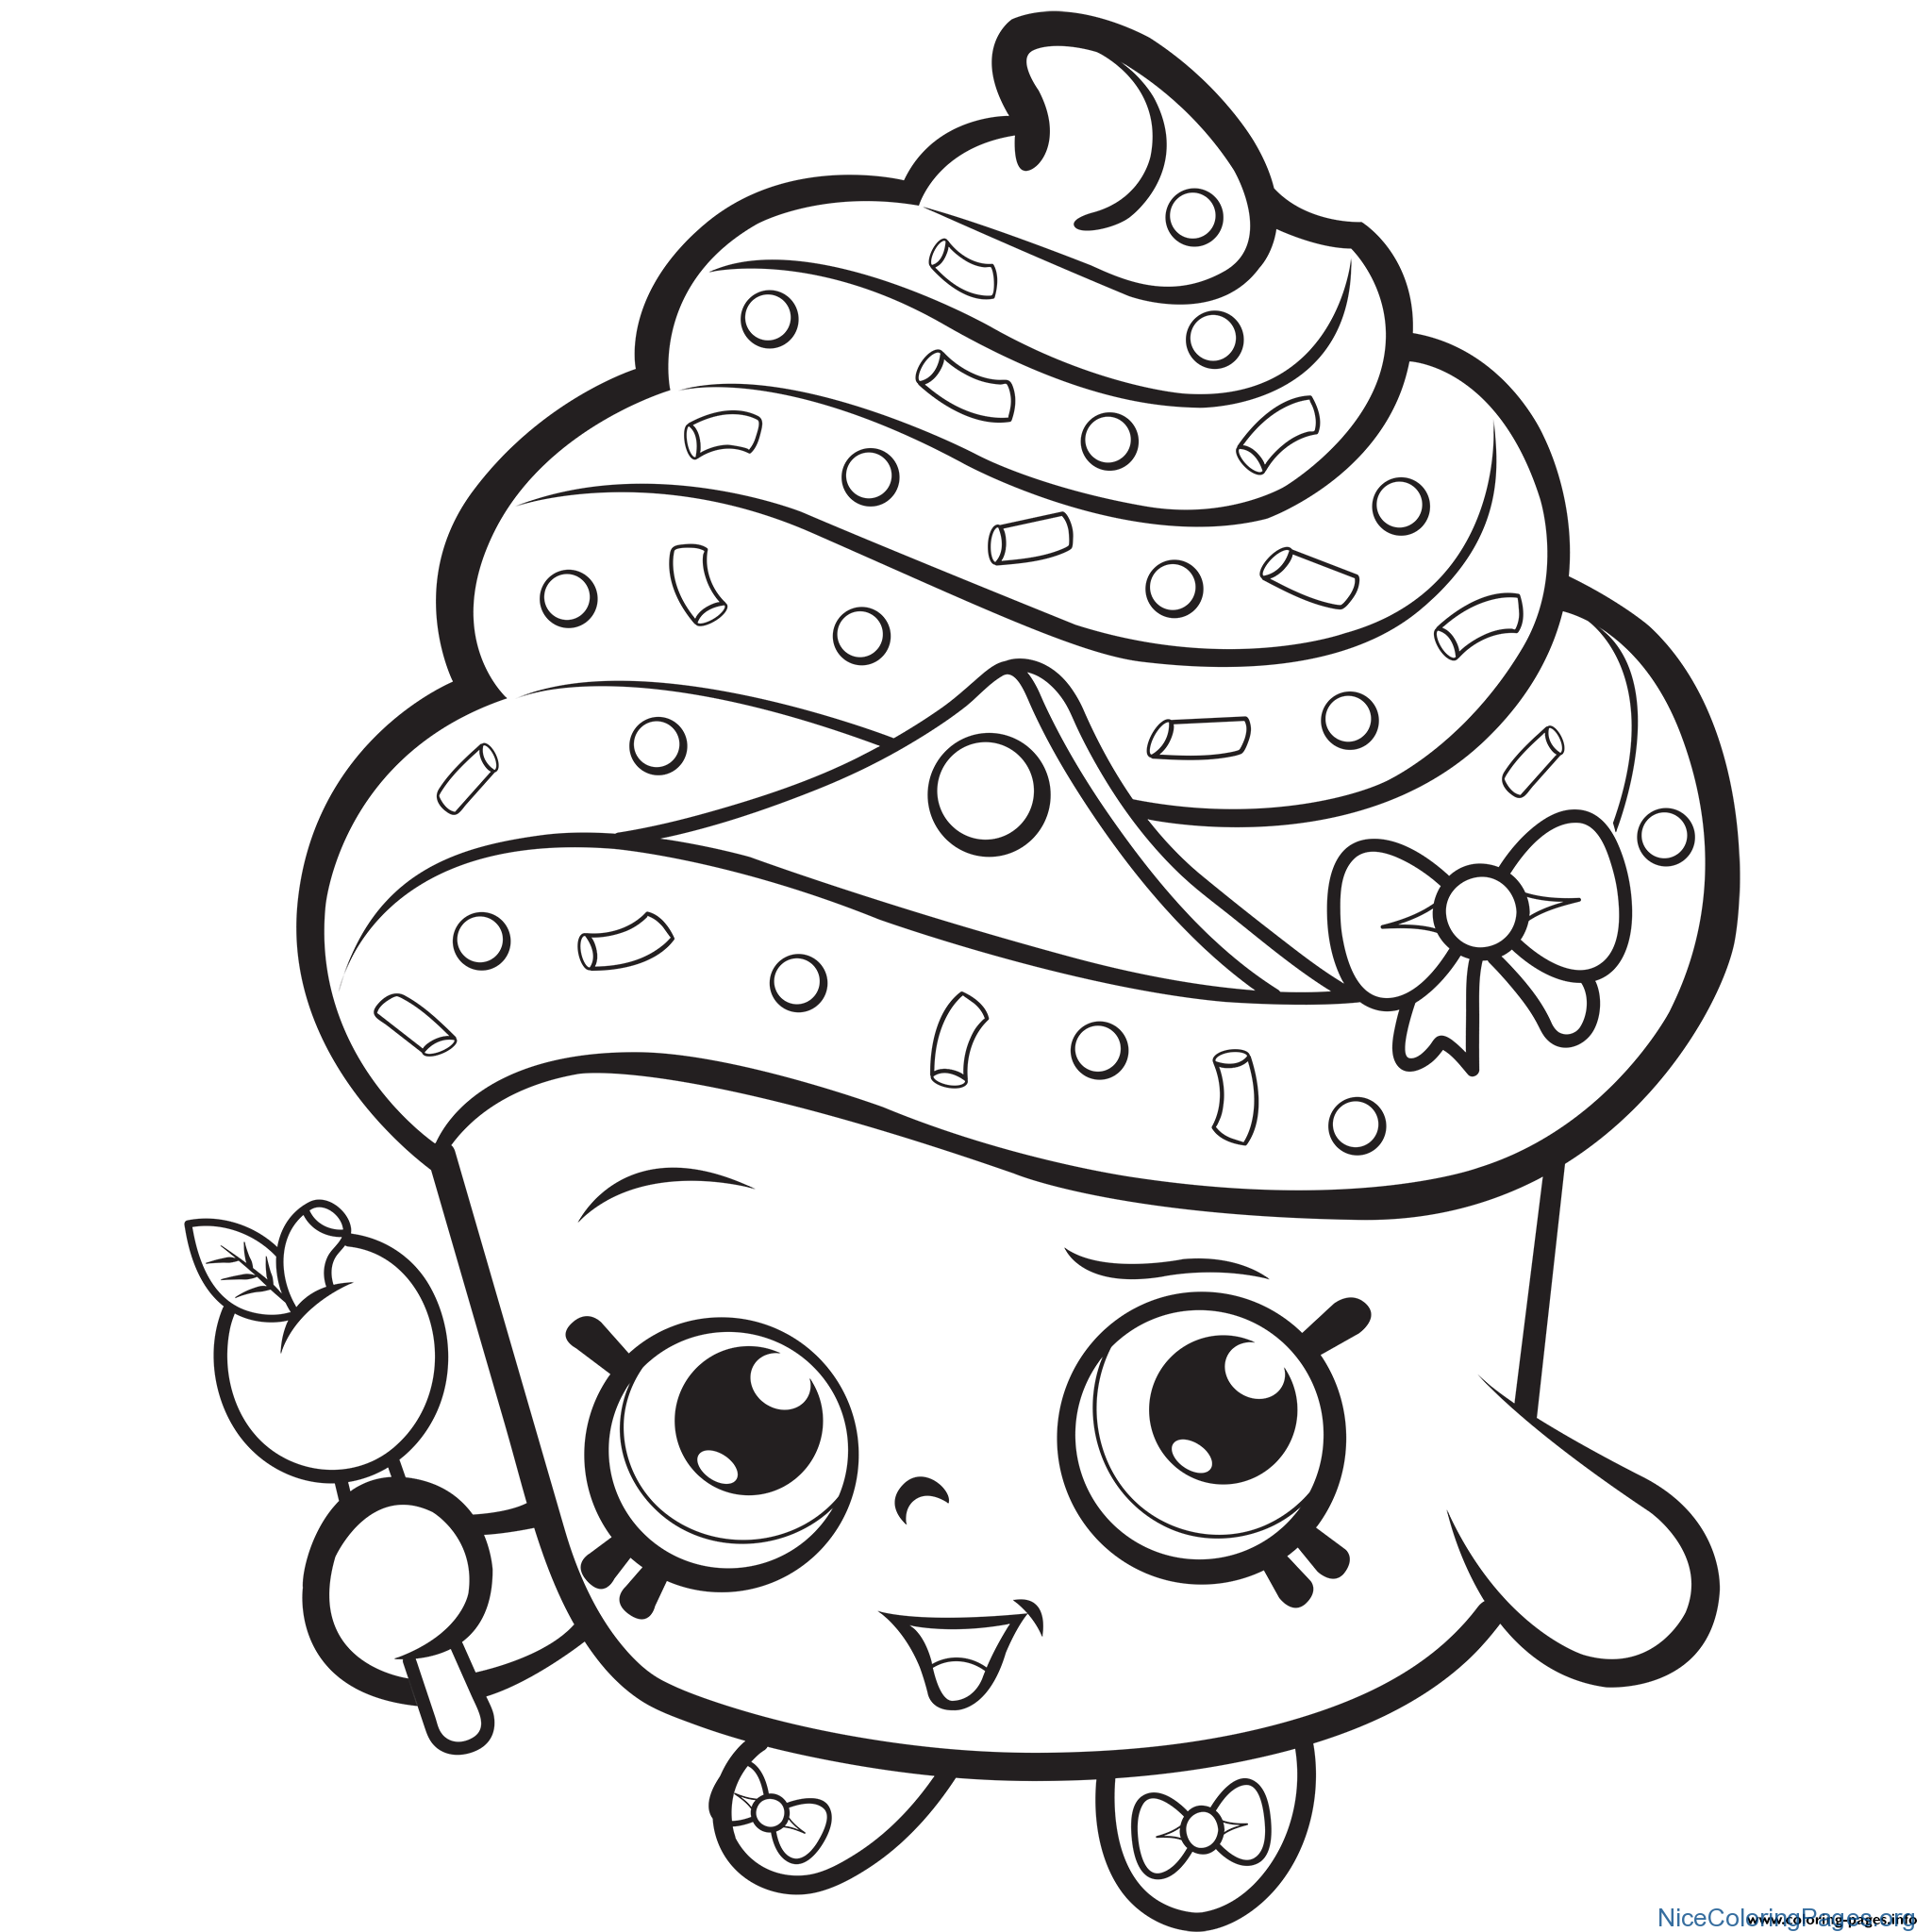 2048x2048 Shopkins Cupcake Coloring Pages Nice Coloring Pages For Kids